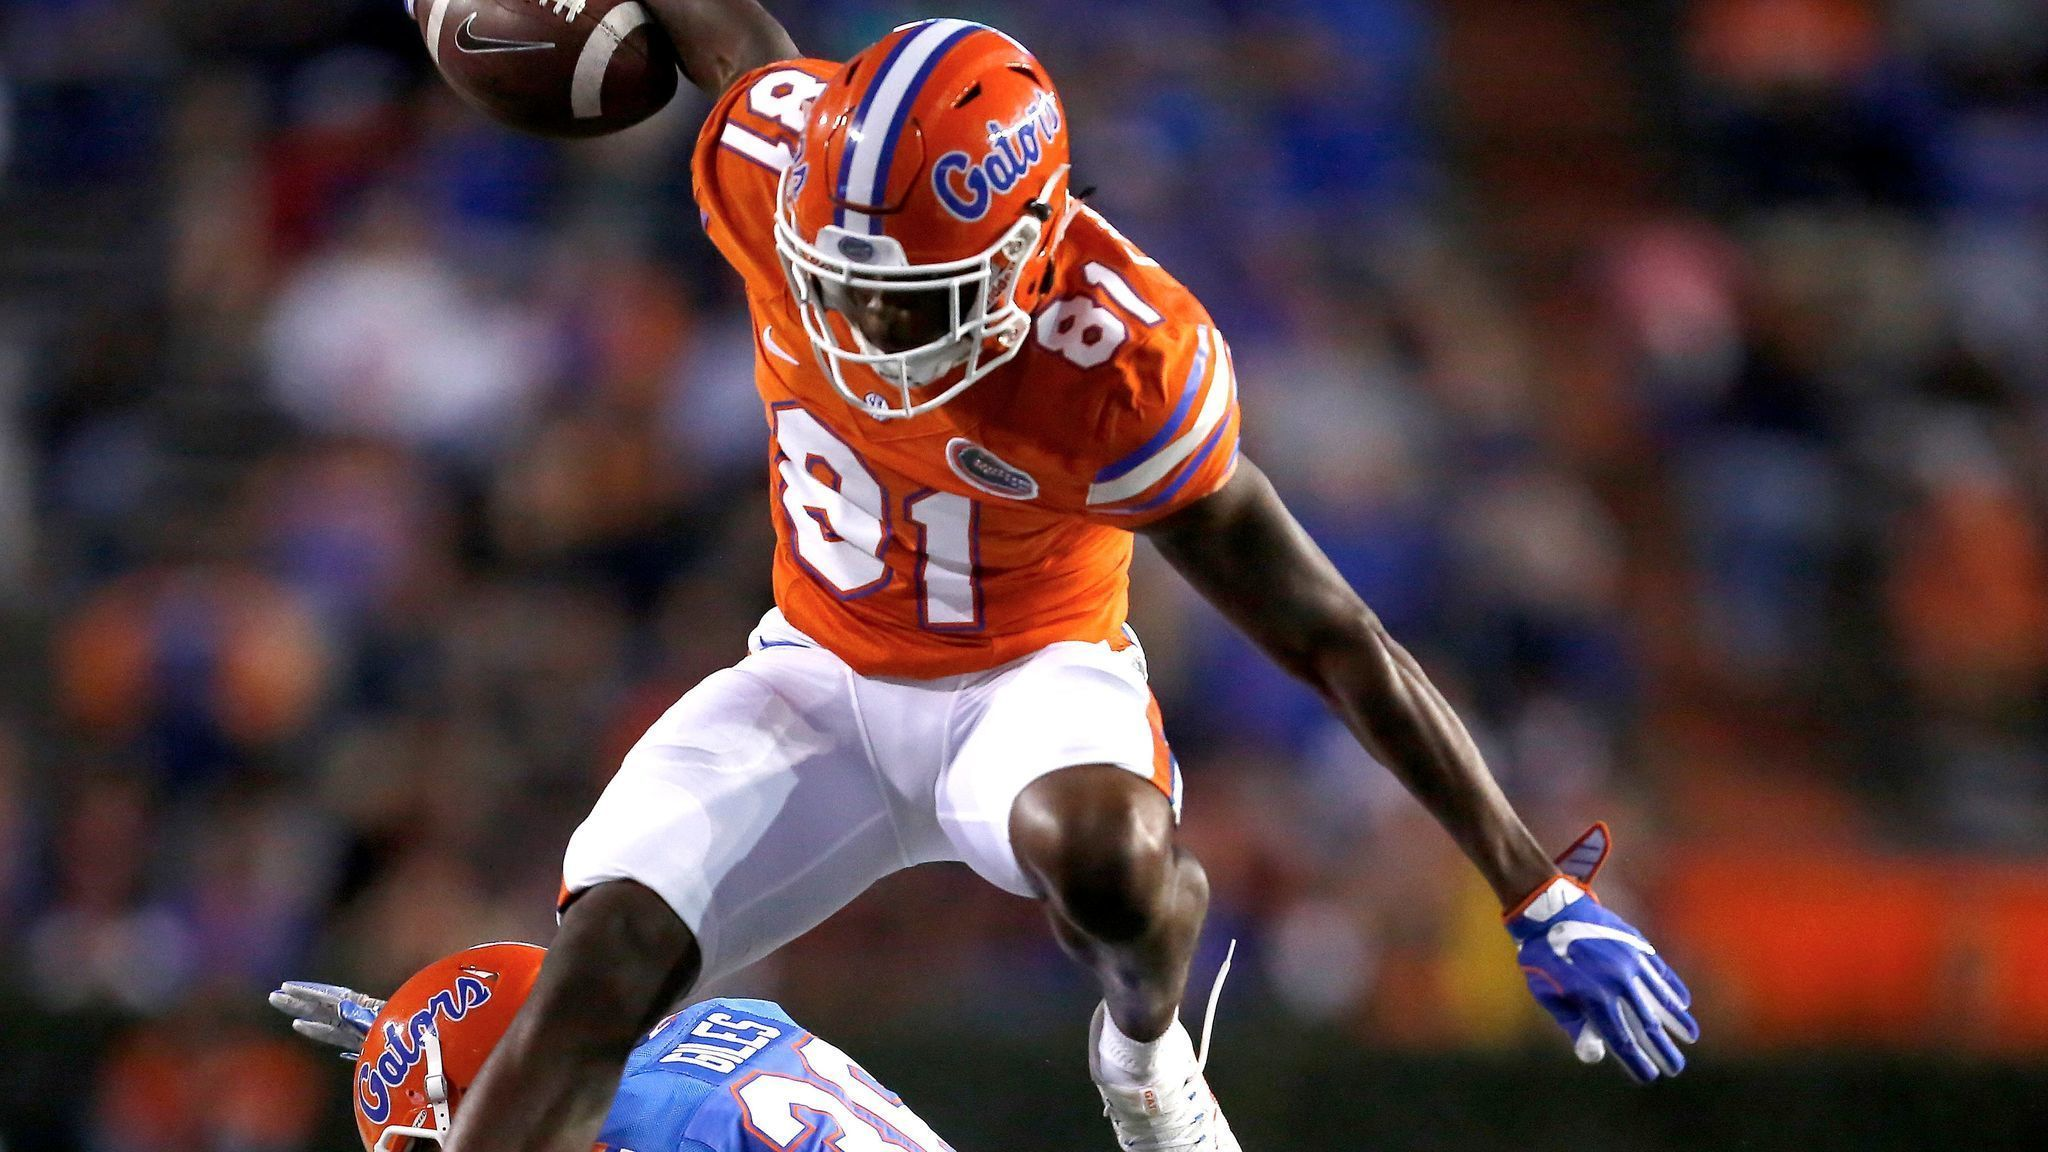 d742fcd72 College football rankings  Florida Gators - Orlando Sentinel